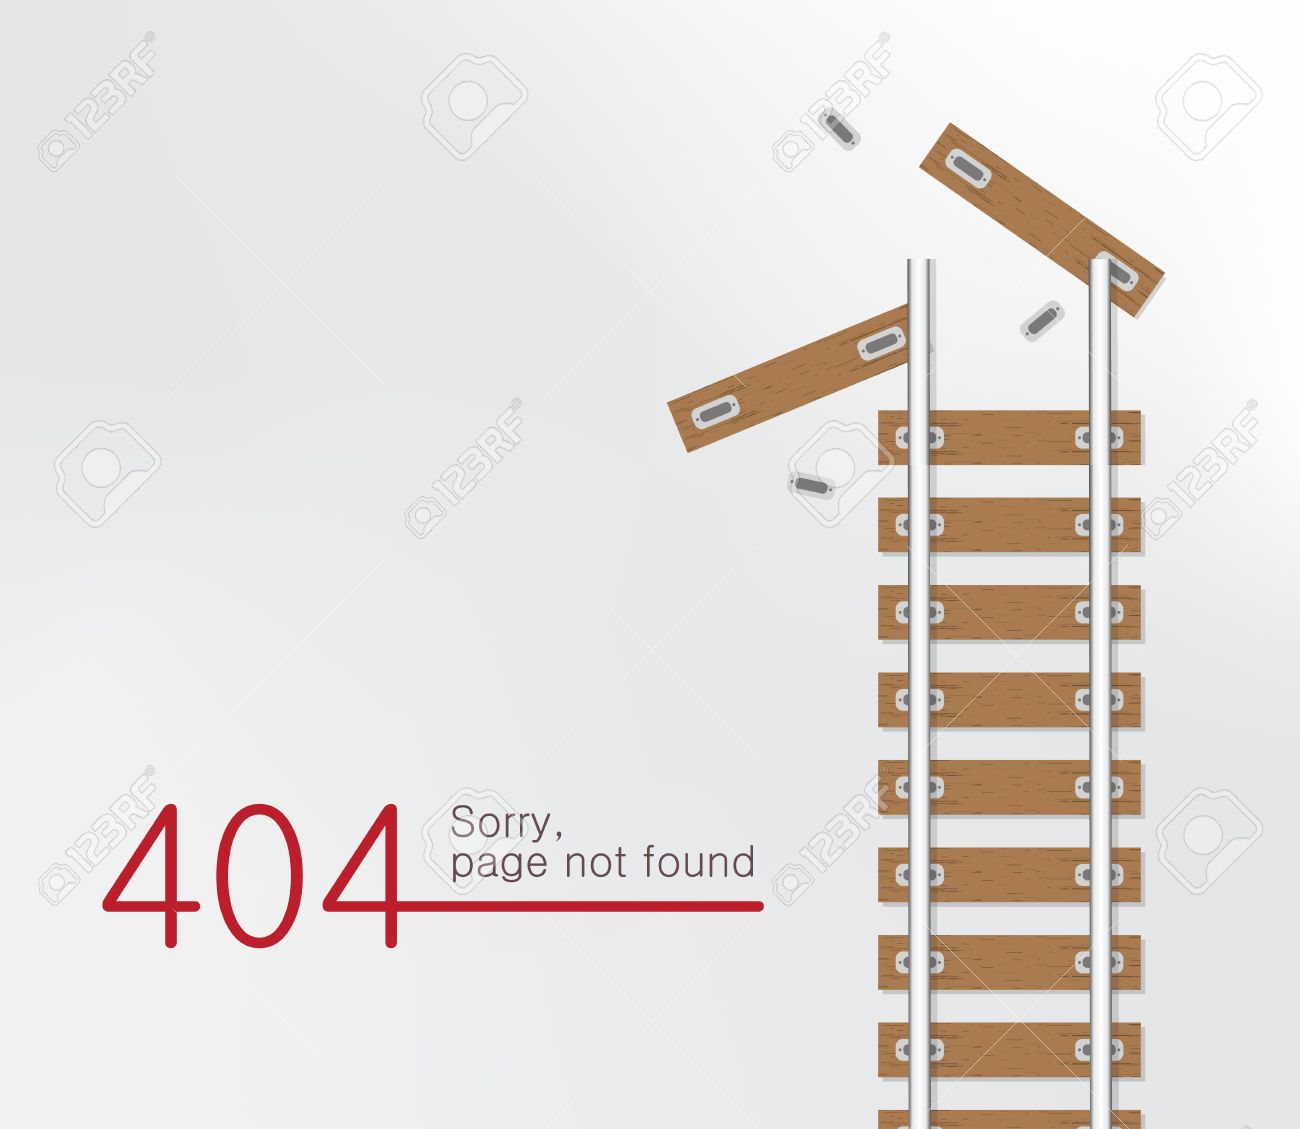 Background image 404 not found - Page Not Found Error 404 Railroad With Wooden Sleeper Background Stock Vector 55483967